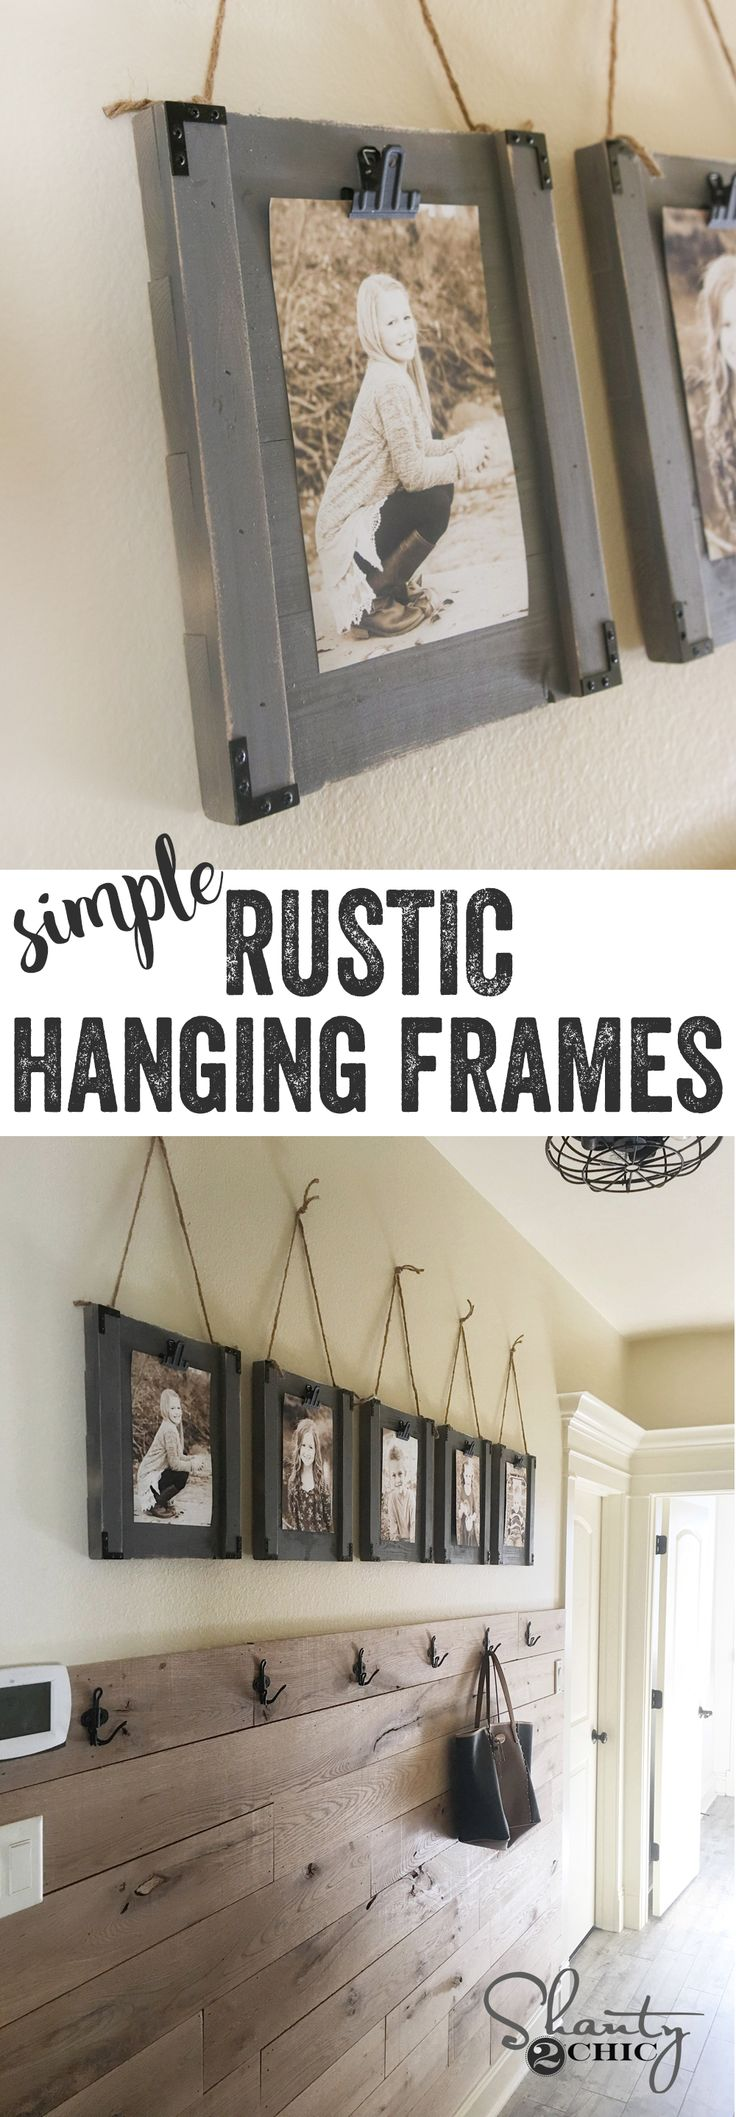 Best 25 farmhouse wall decor ideas on pinterest rustic wall diy hanging frames and youtube video wall decor amipublicfo Gallery